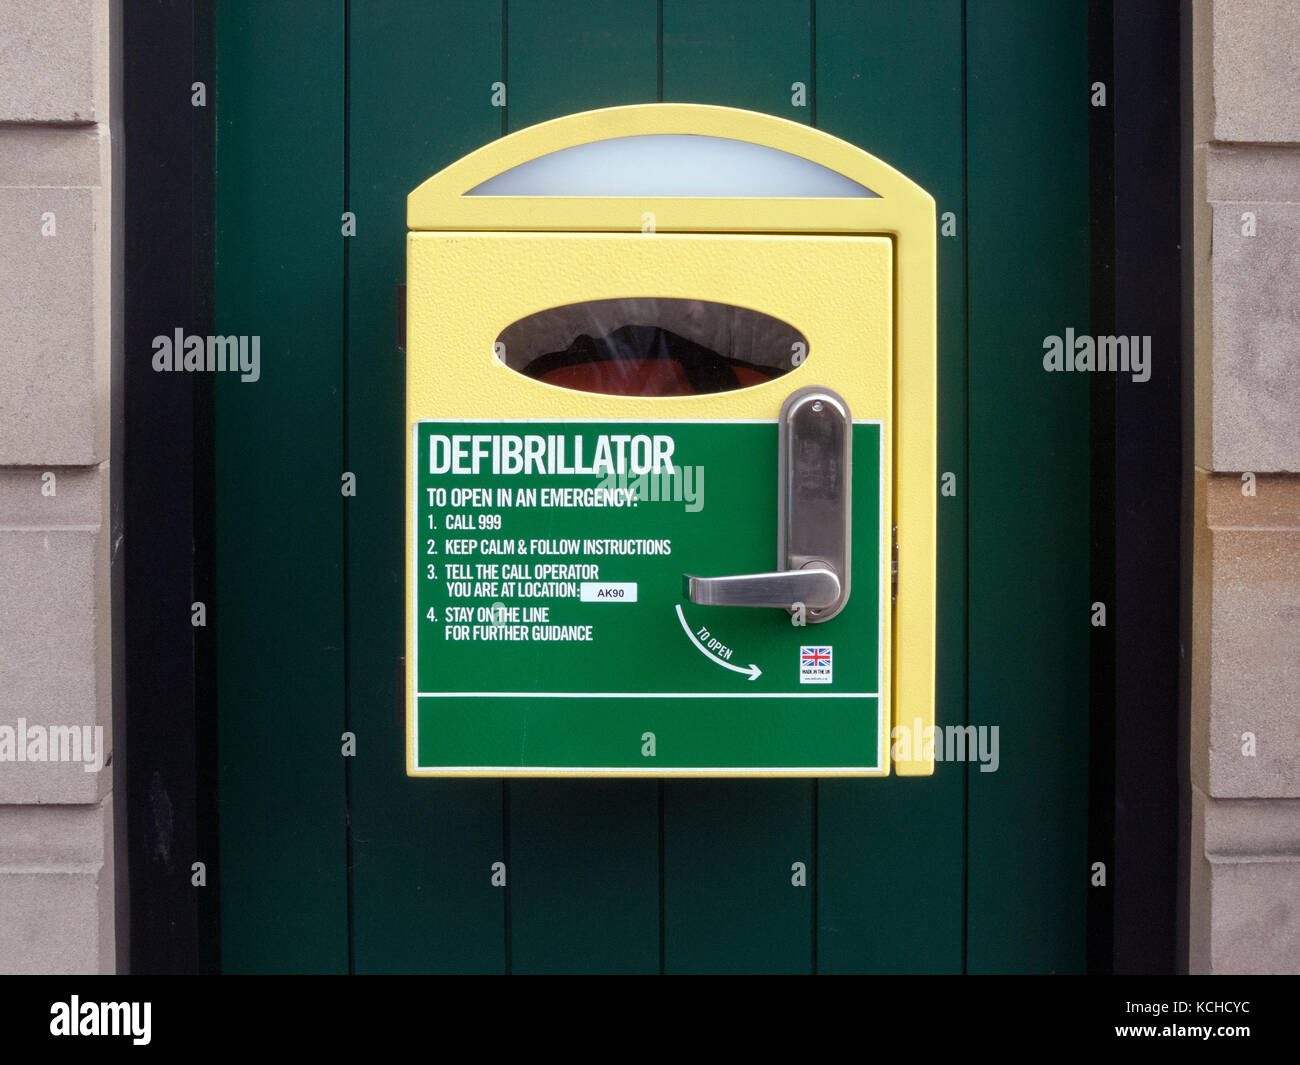 Wall mounted Defibrillator Cabinet with instructions, located in town centre - Stock Image